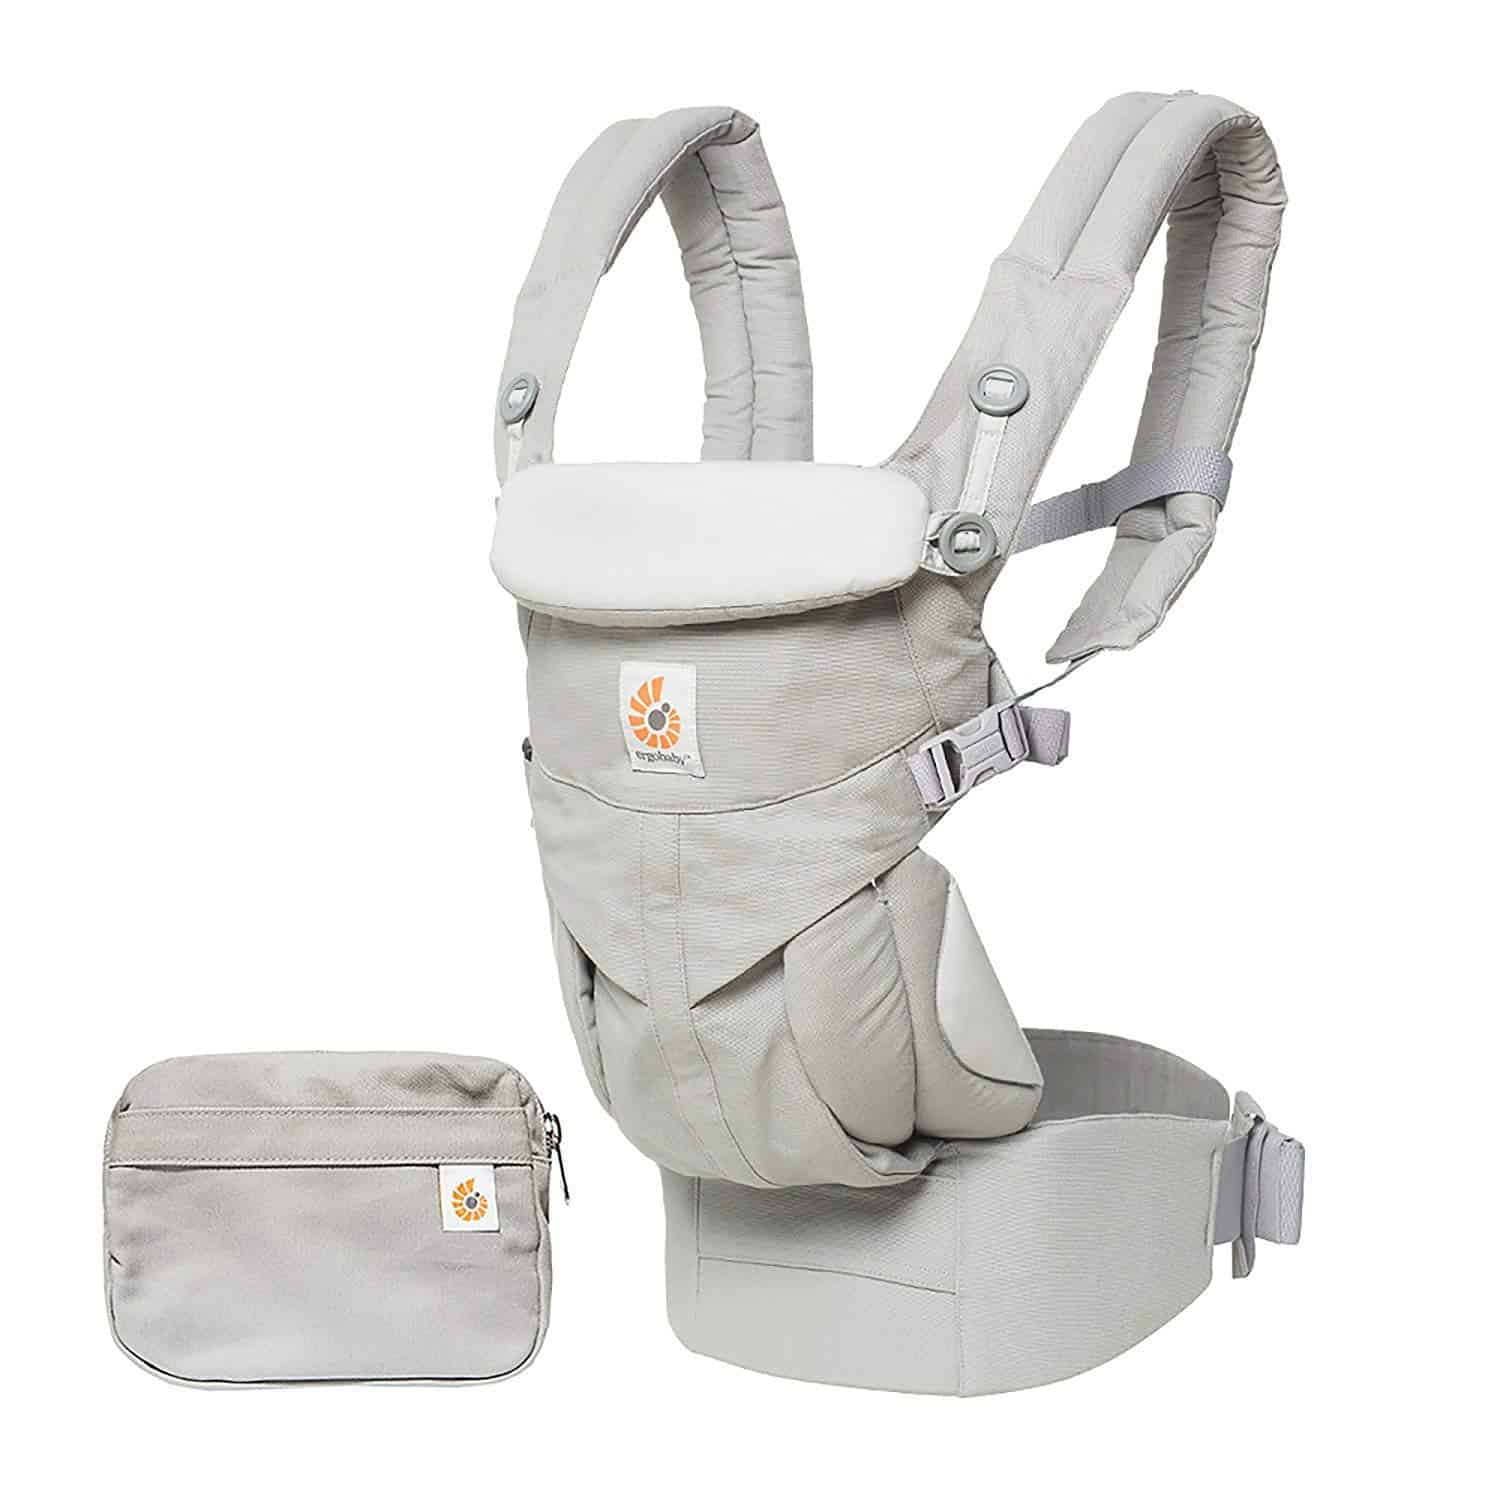 Ergobaby Carrier1